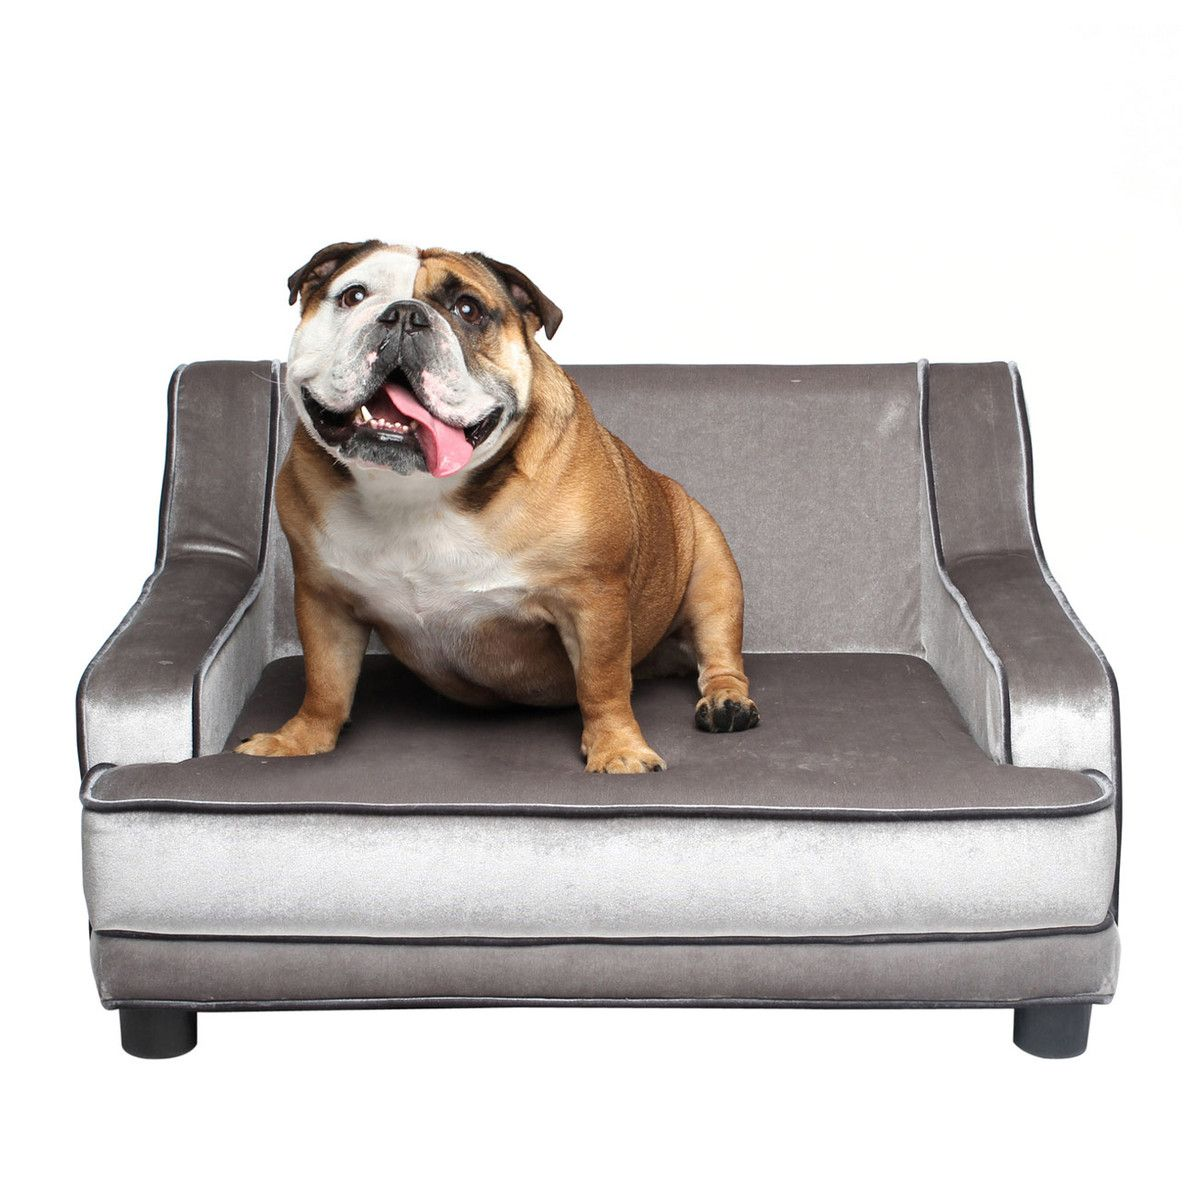 Modern Pet Sofa Accommodates Dogs Up To 55 Lbs Can Also Be Used